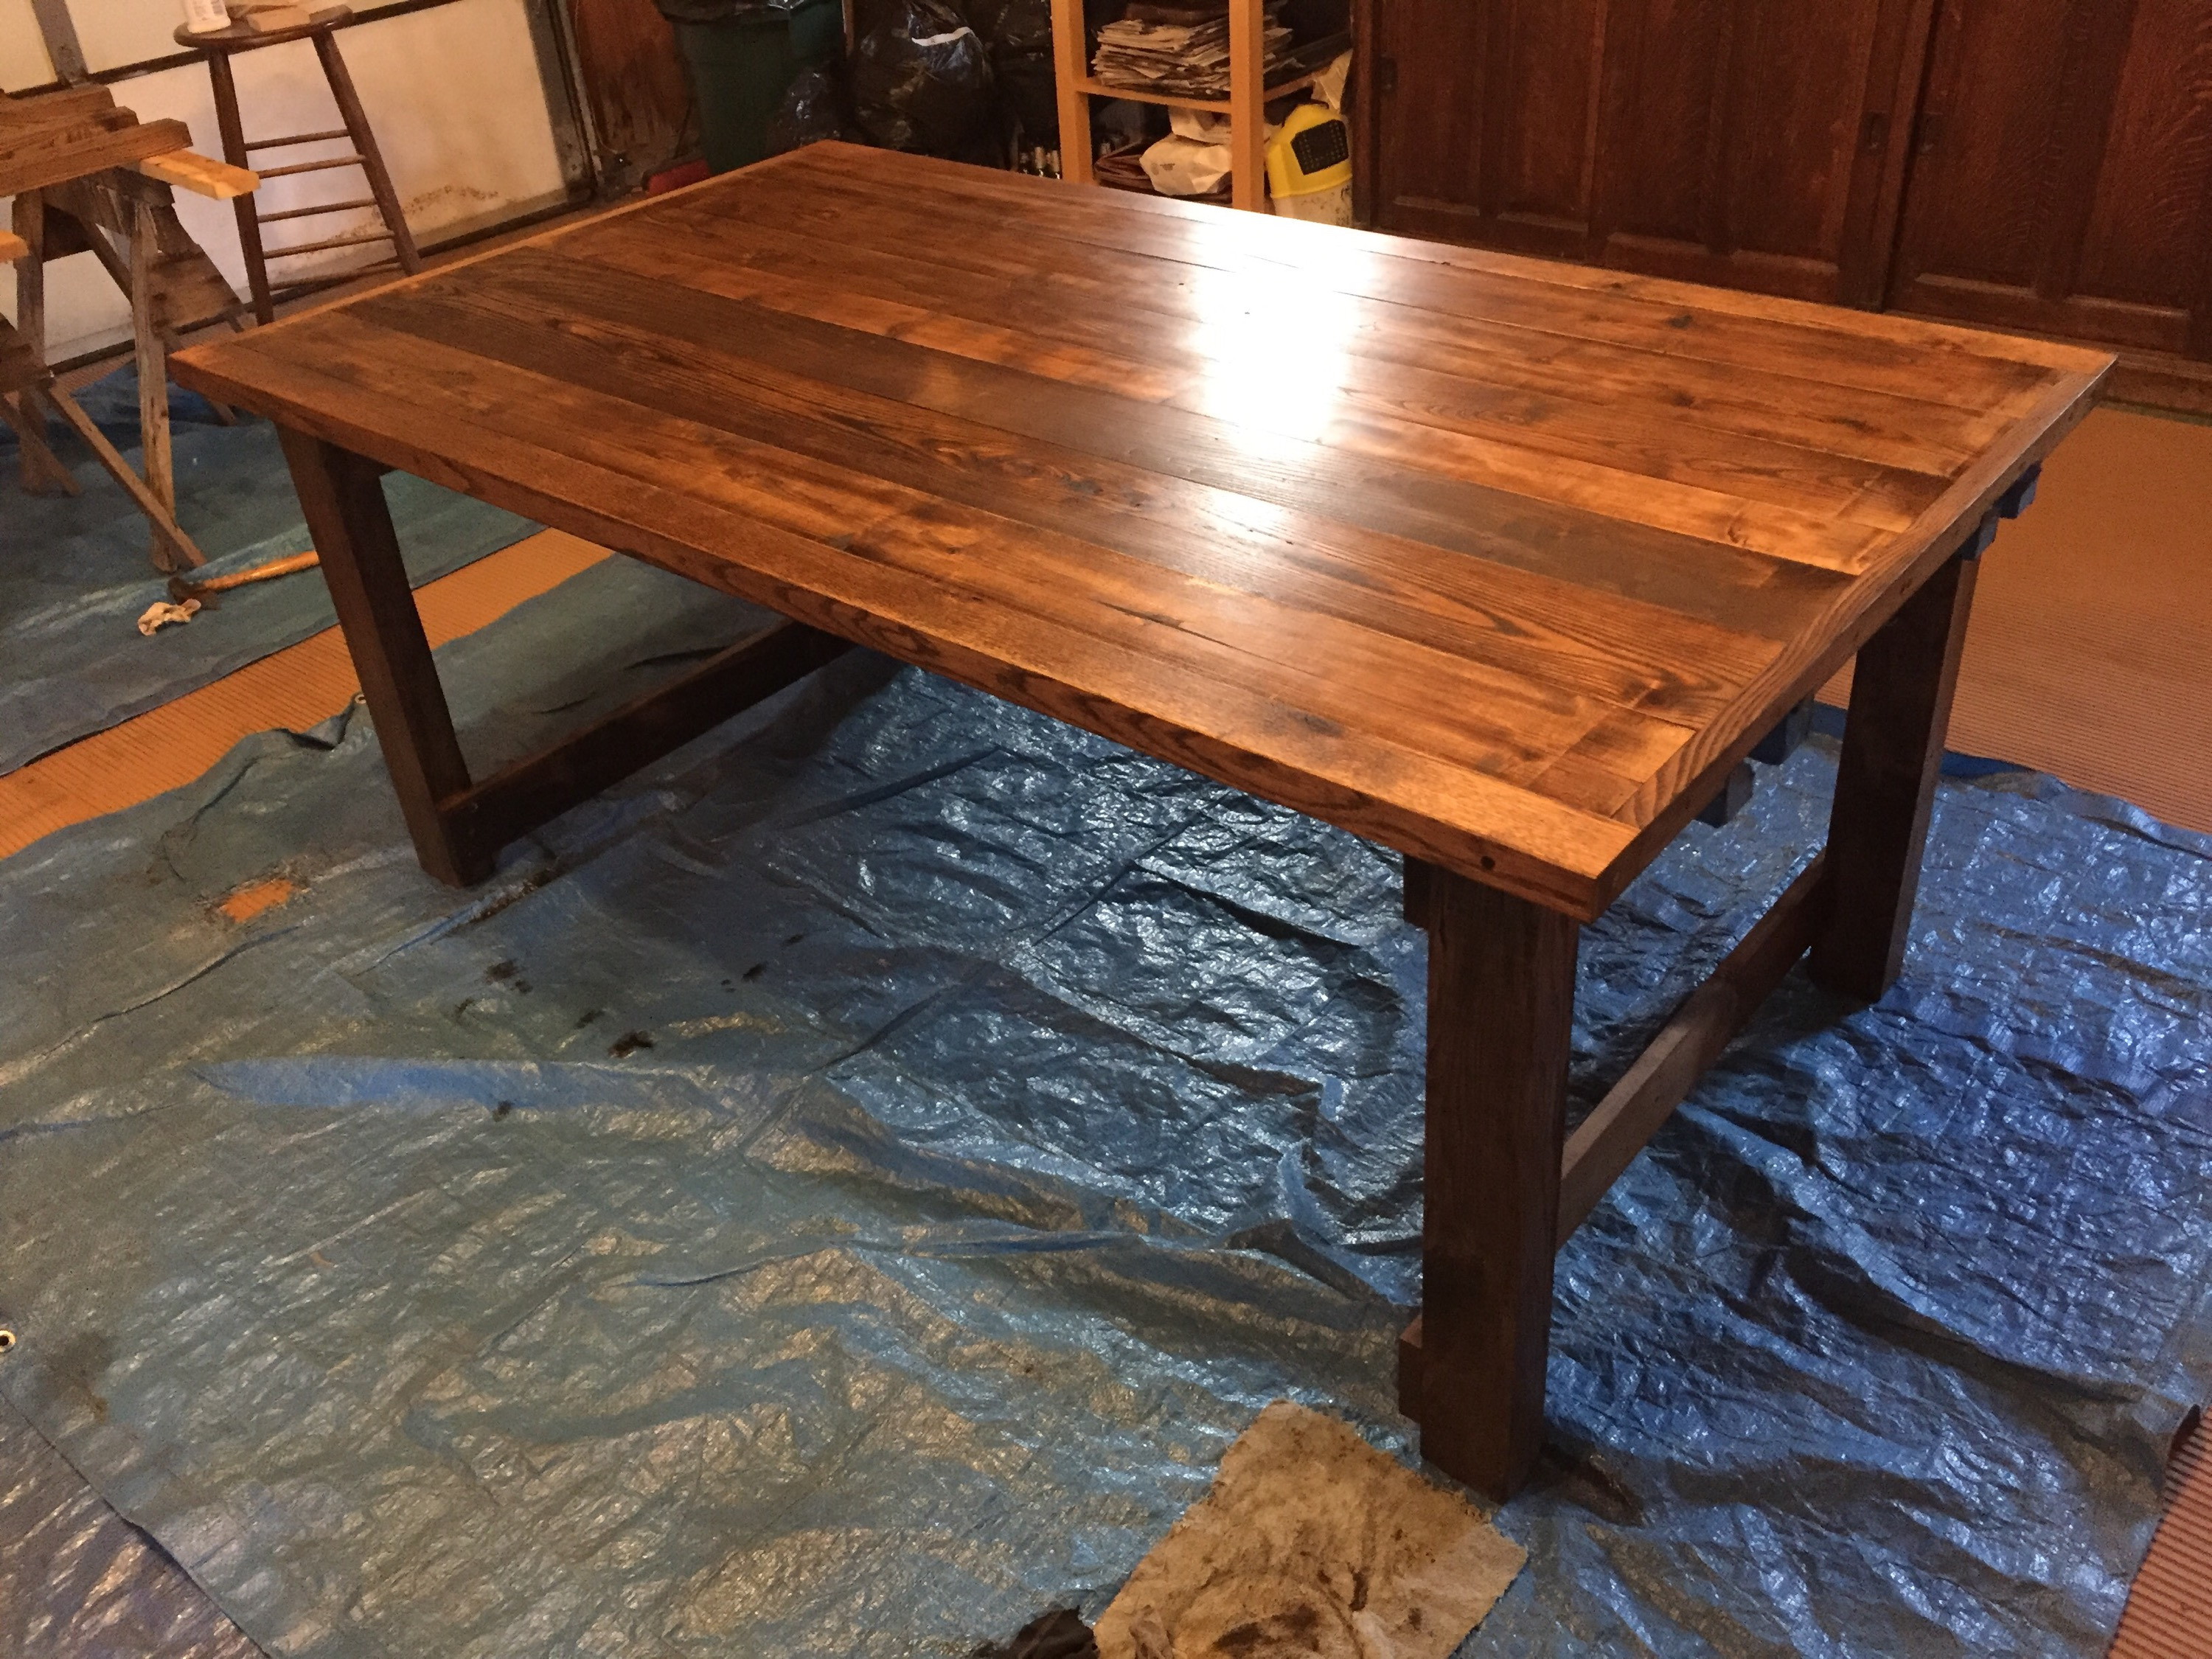 custom dining room tables   Custom Dining Room Table in the Making: Assembly and ...